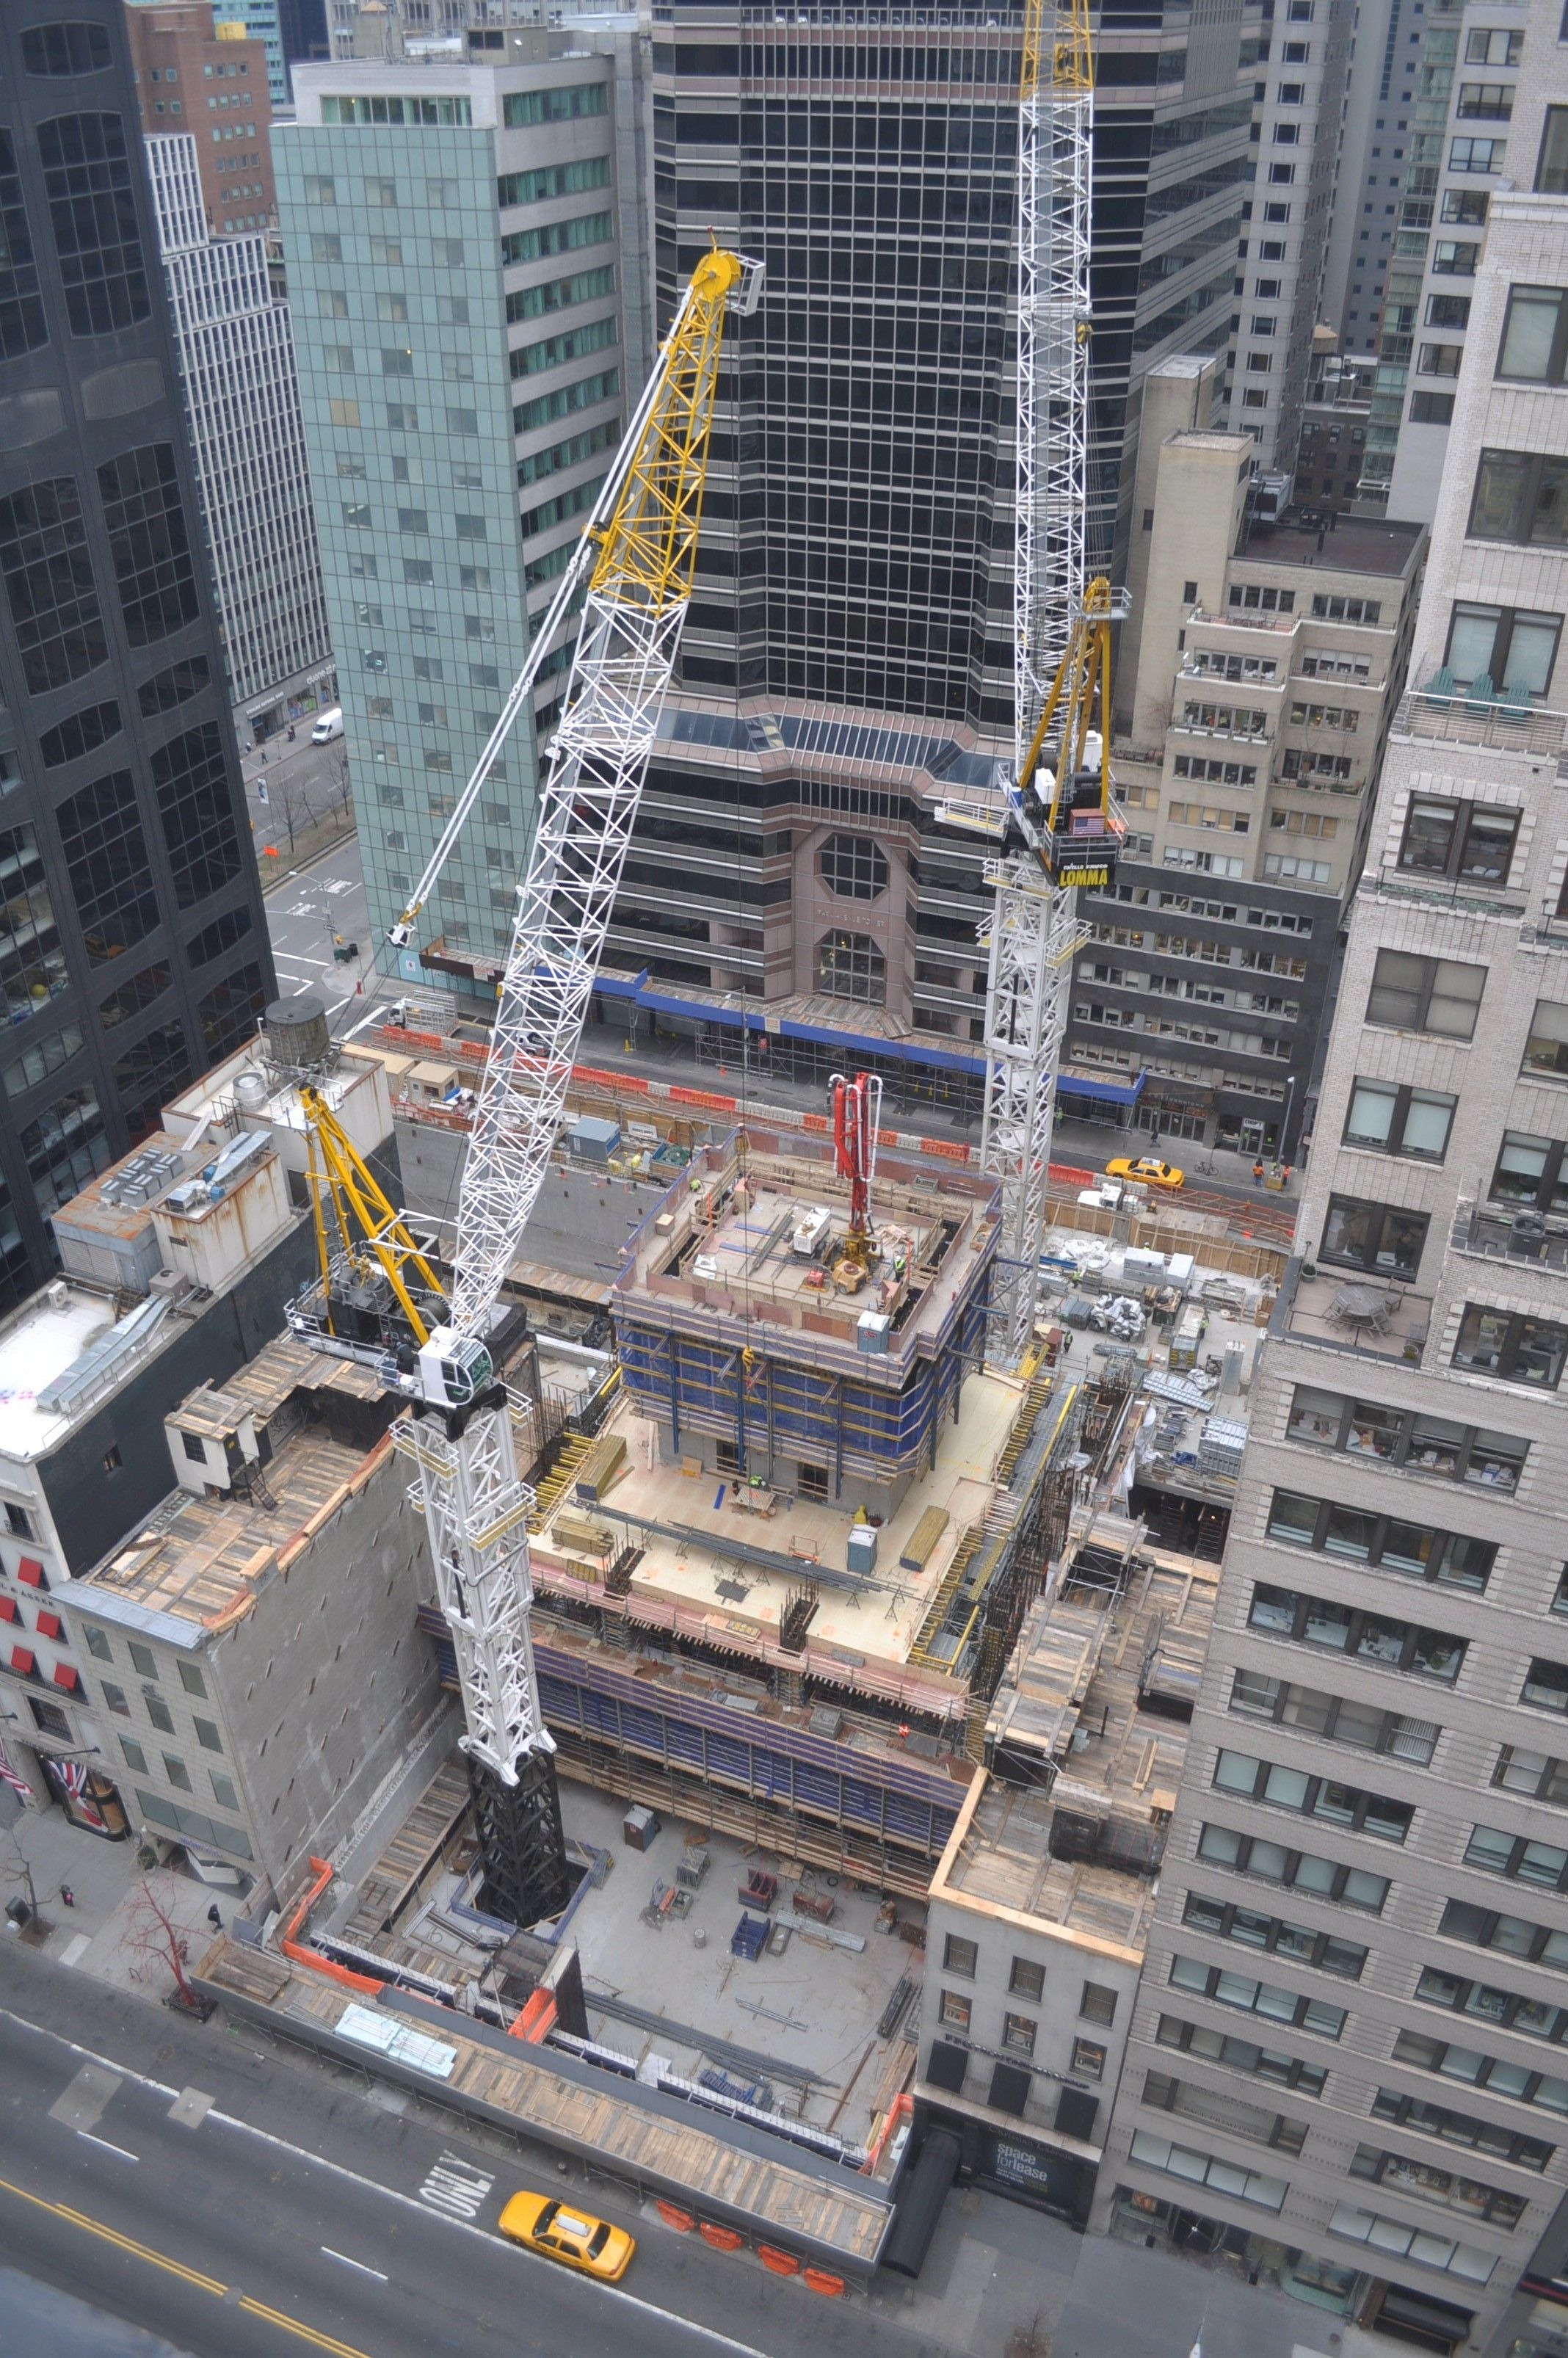 432 Park Avenue In New York City. See Construction